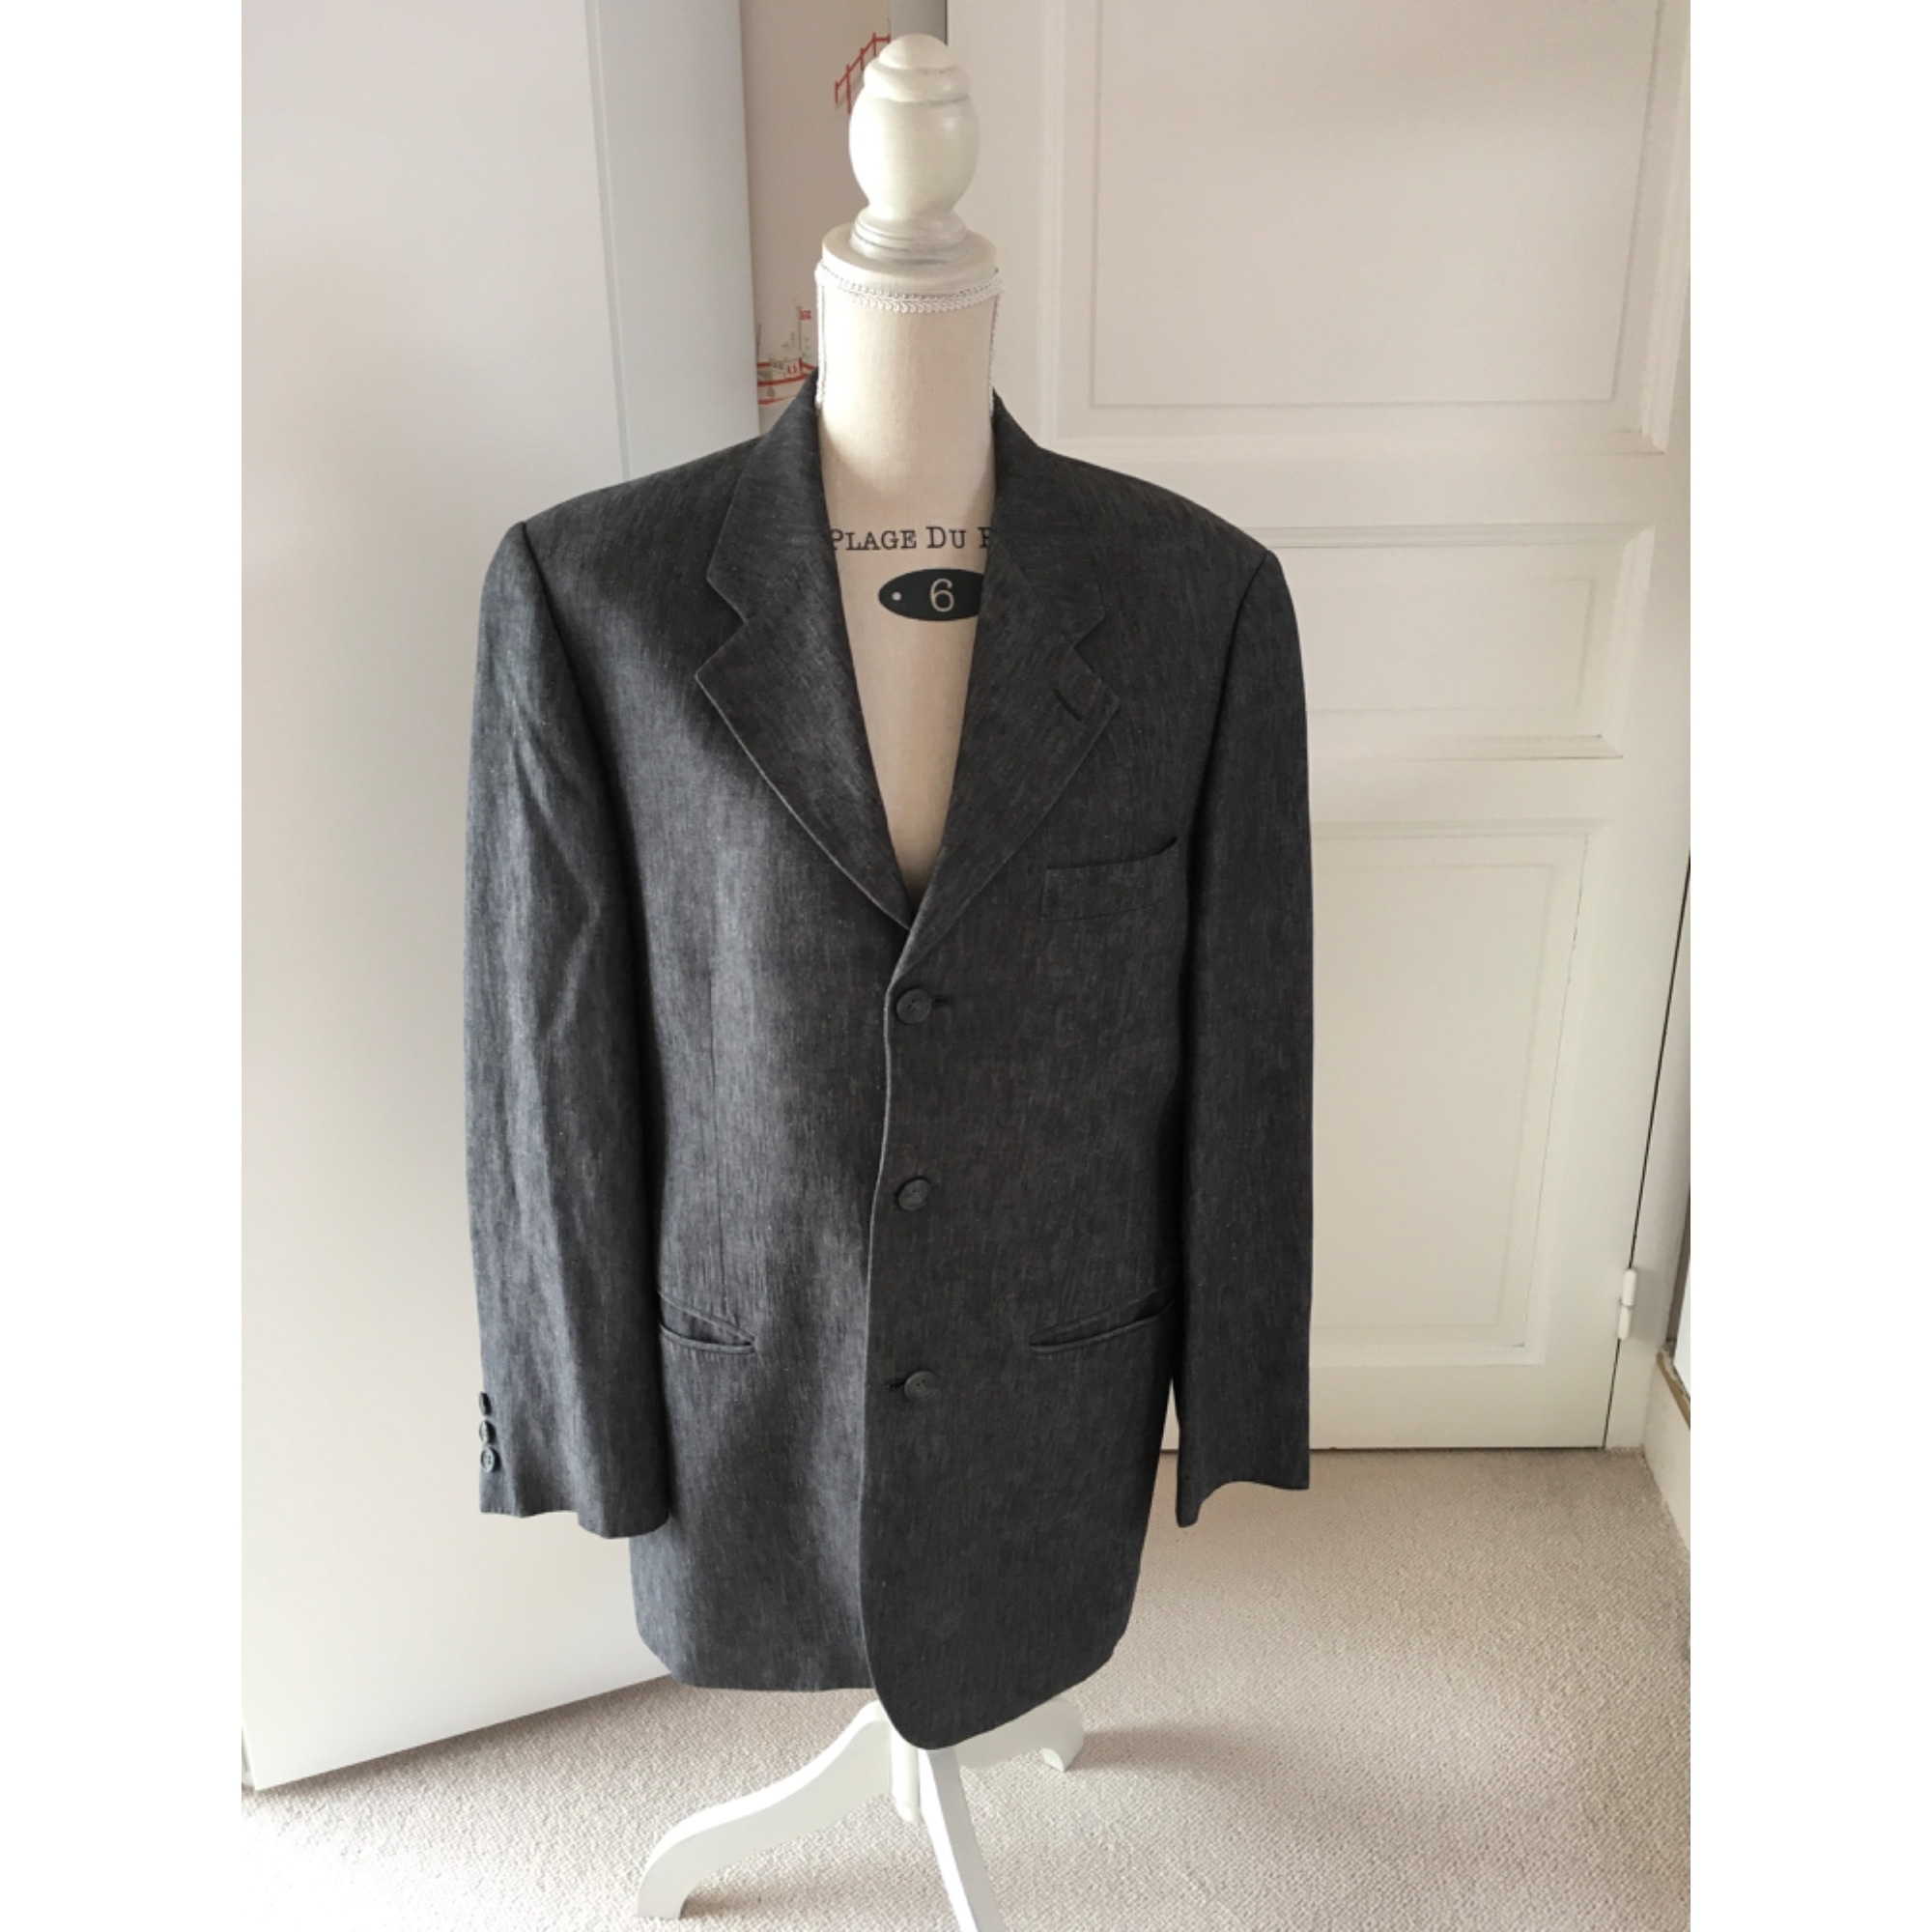 Costume complet GEORGES RECH Gris, anthracite